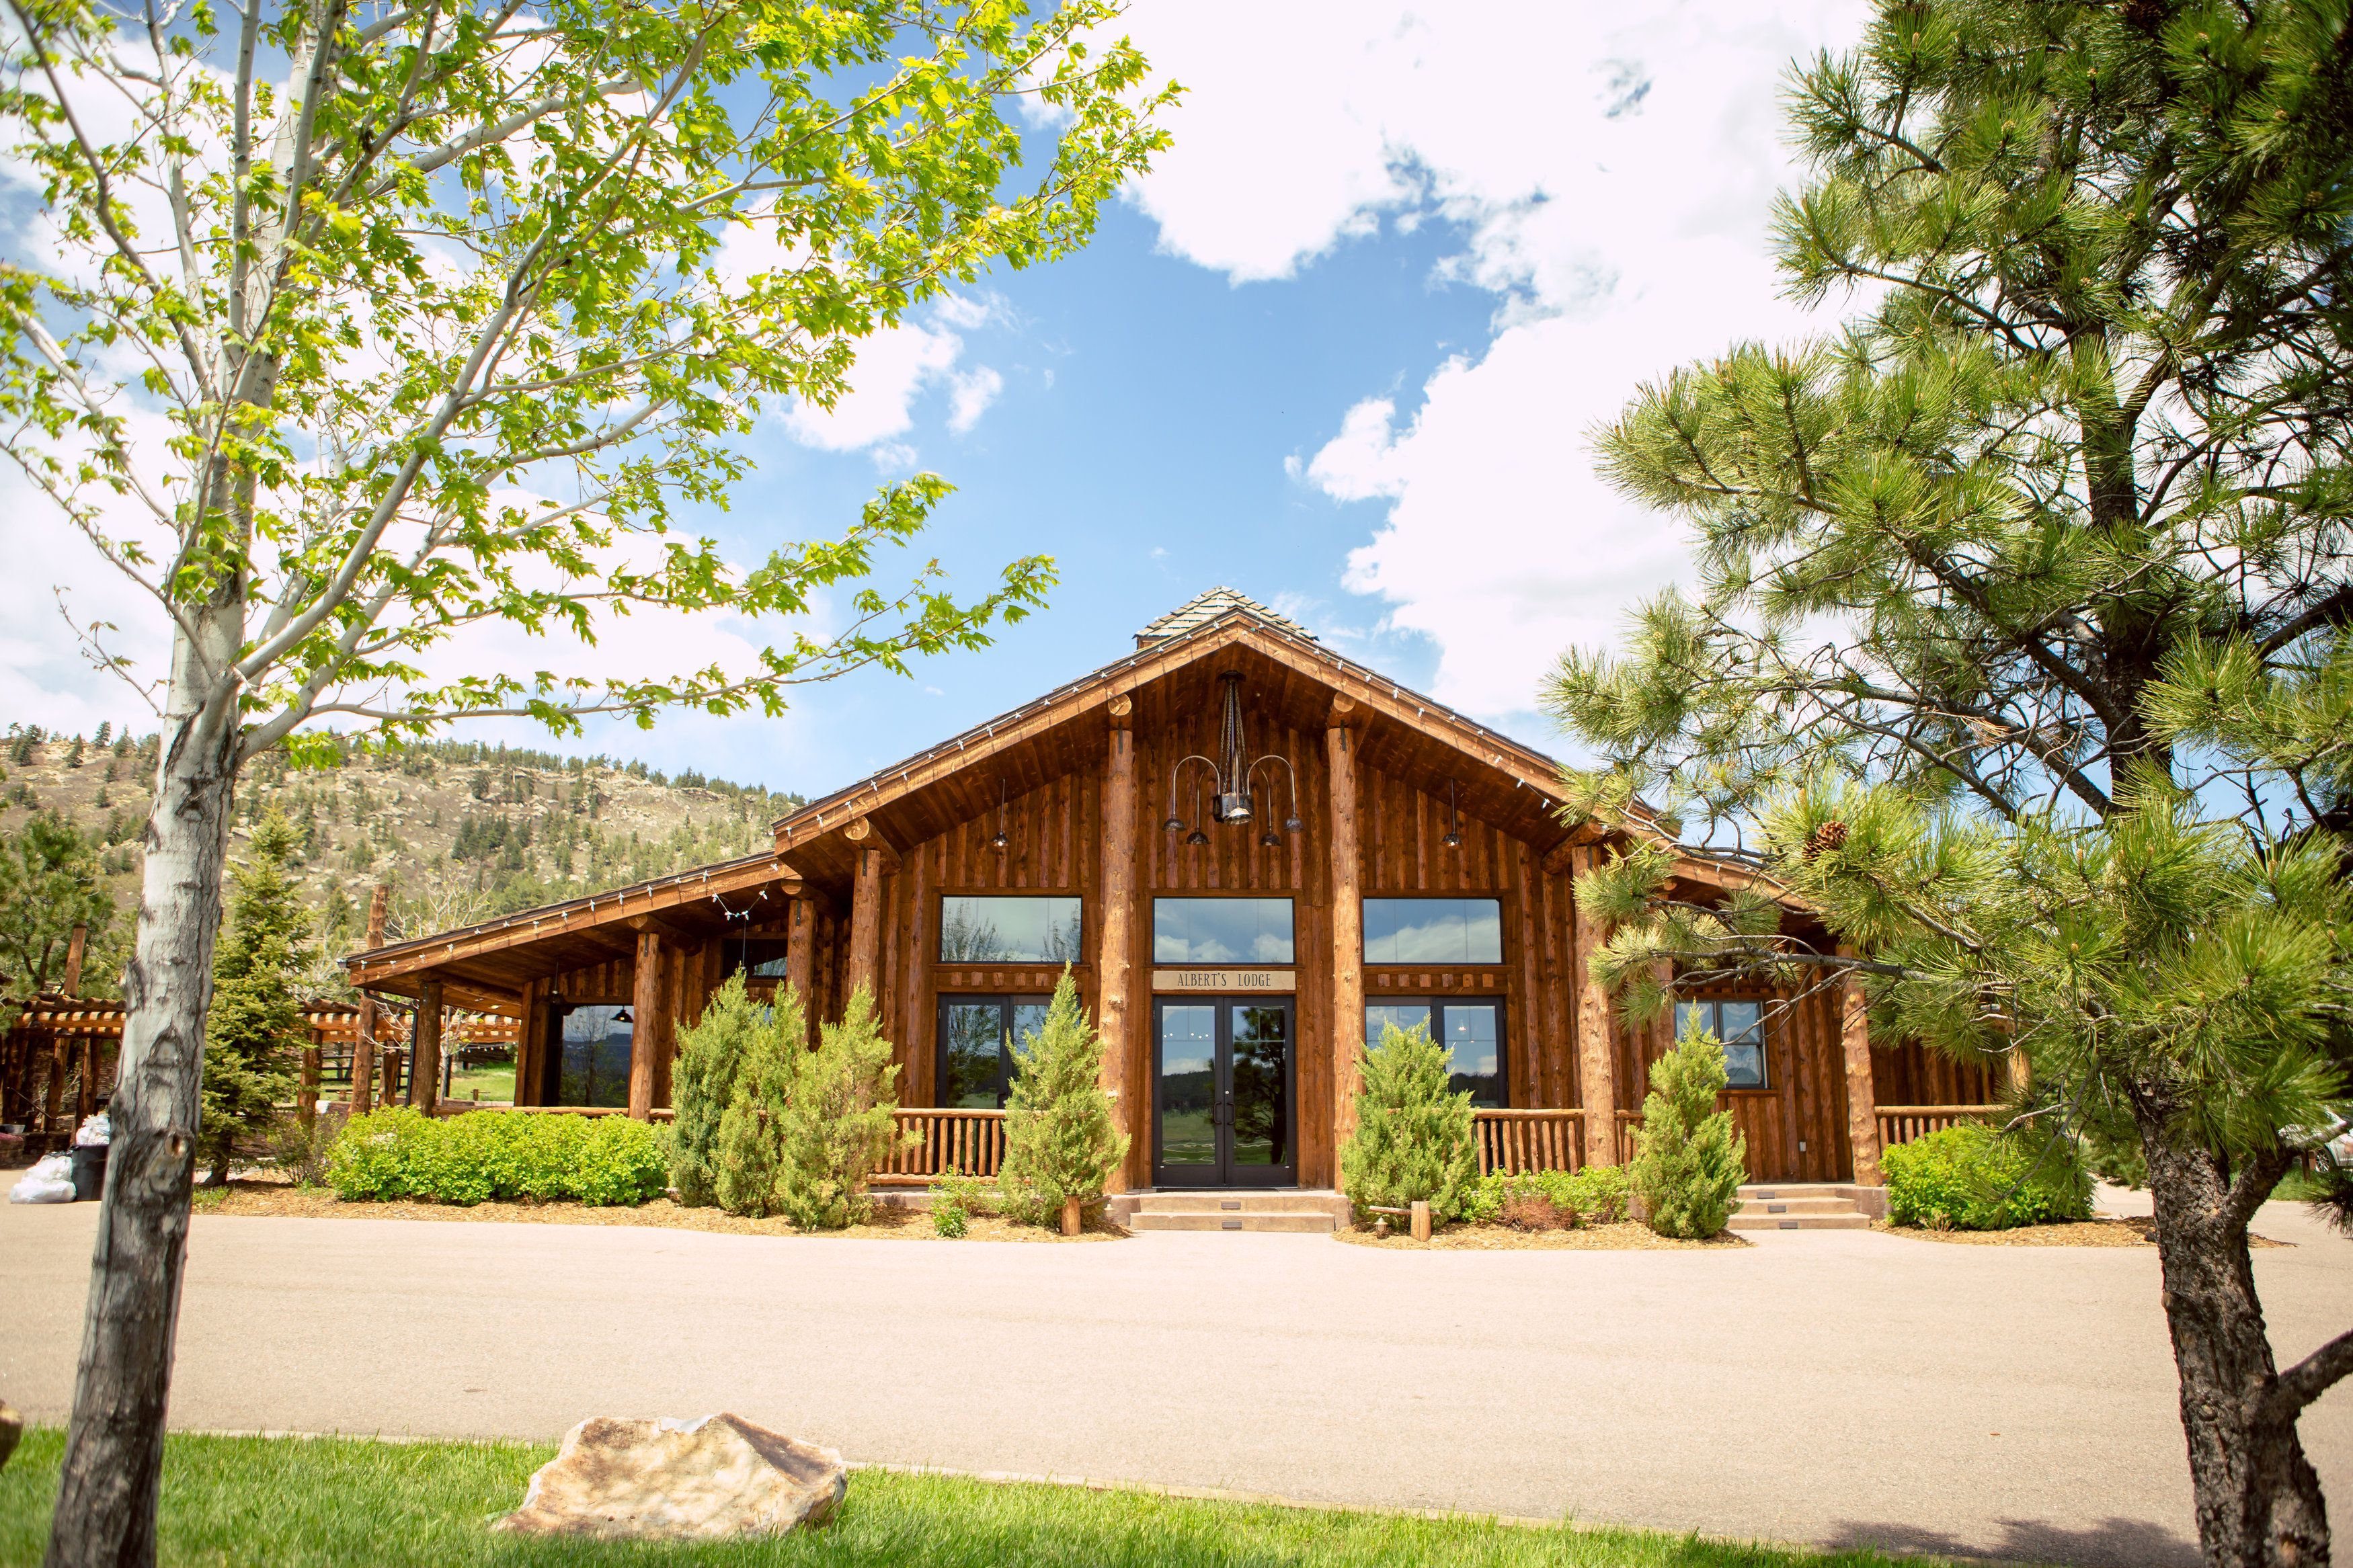 Albert S Lodge At Spruce Mountain Ranch Larkspur Co Colorado Weddings Photo Credit